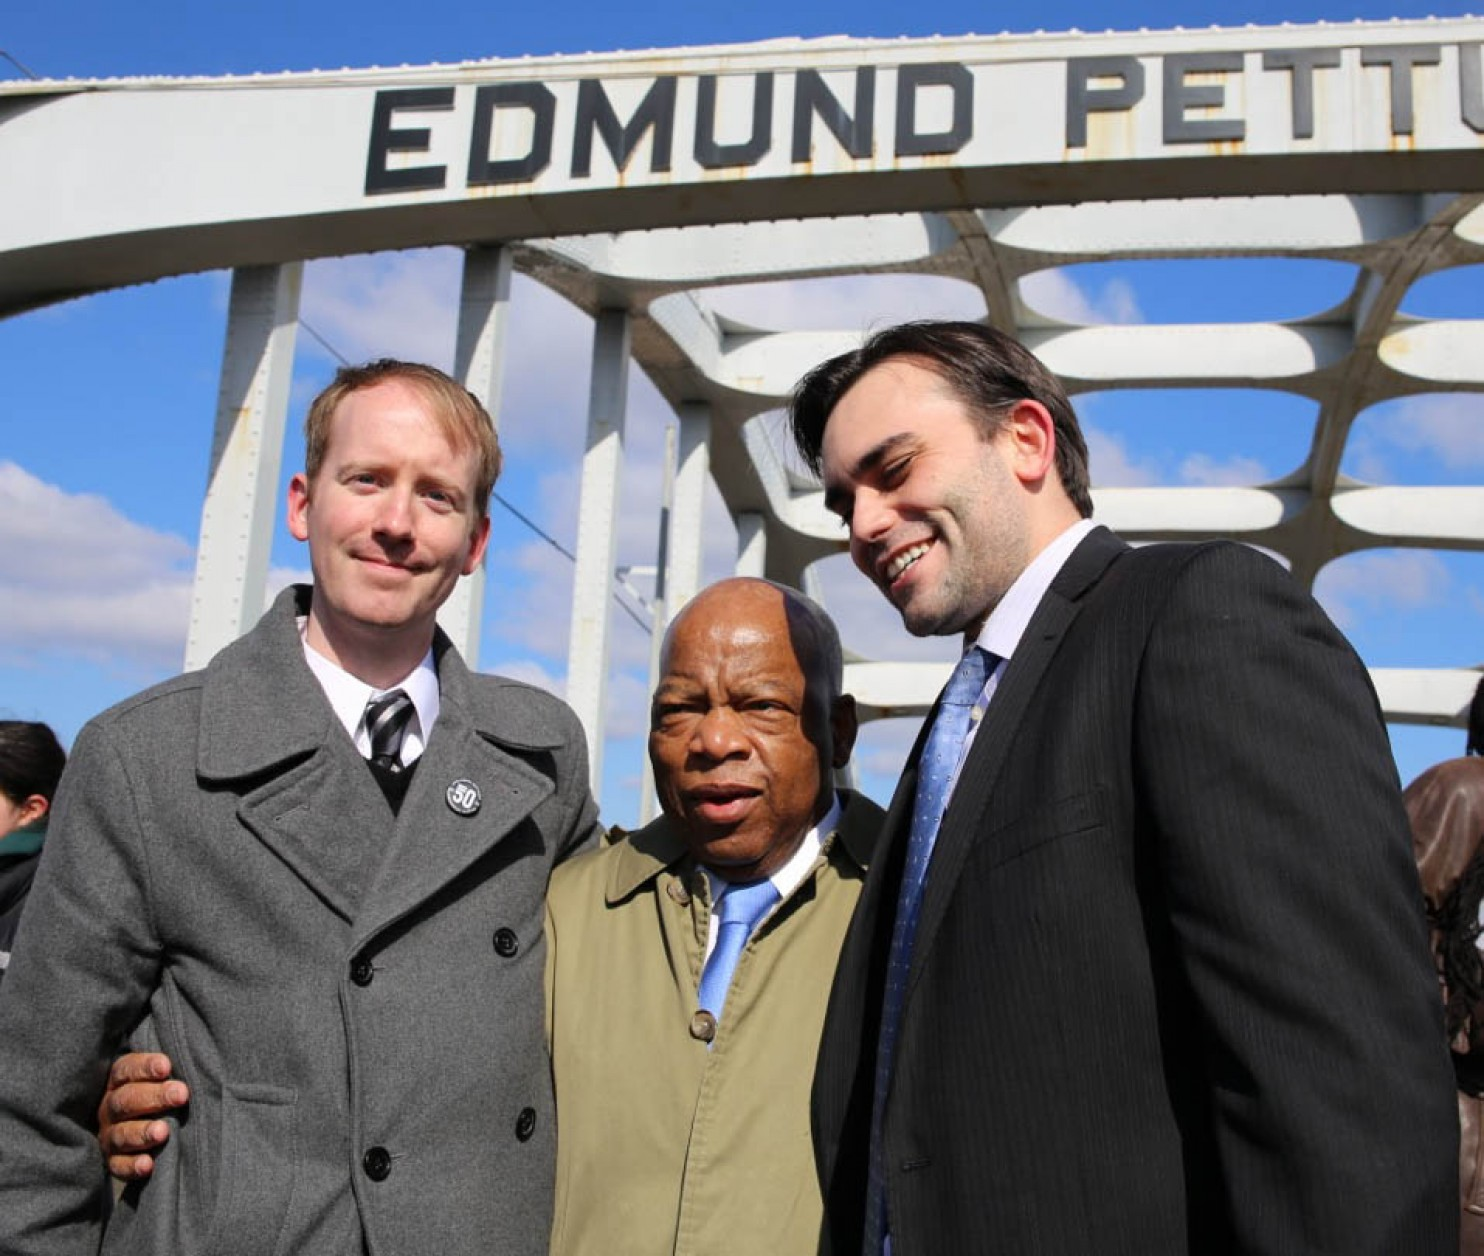 Authors Nate Powell, Rep. John Lewis and Andrew Aydin stand near the symbolic Edmund Pettus Bridge near Selma, Alabama.